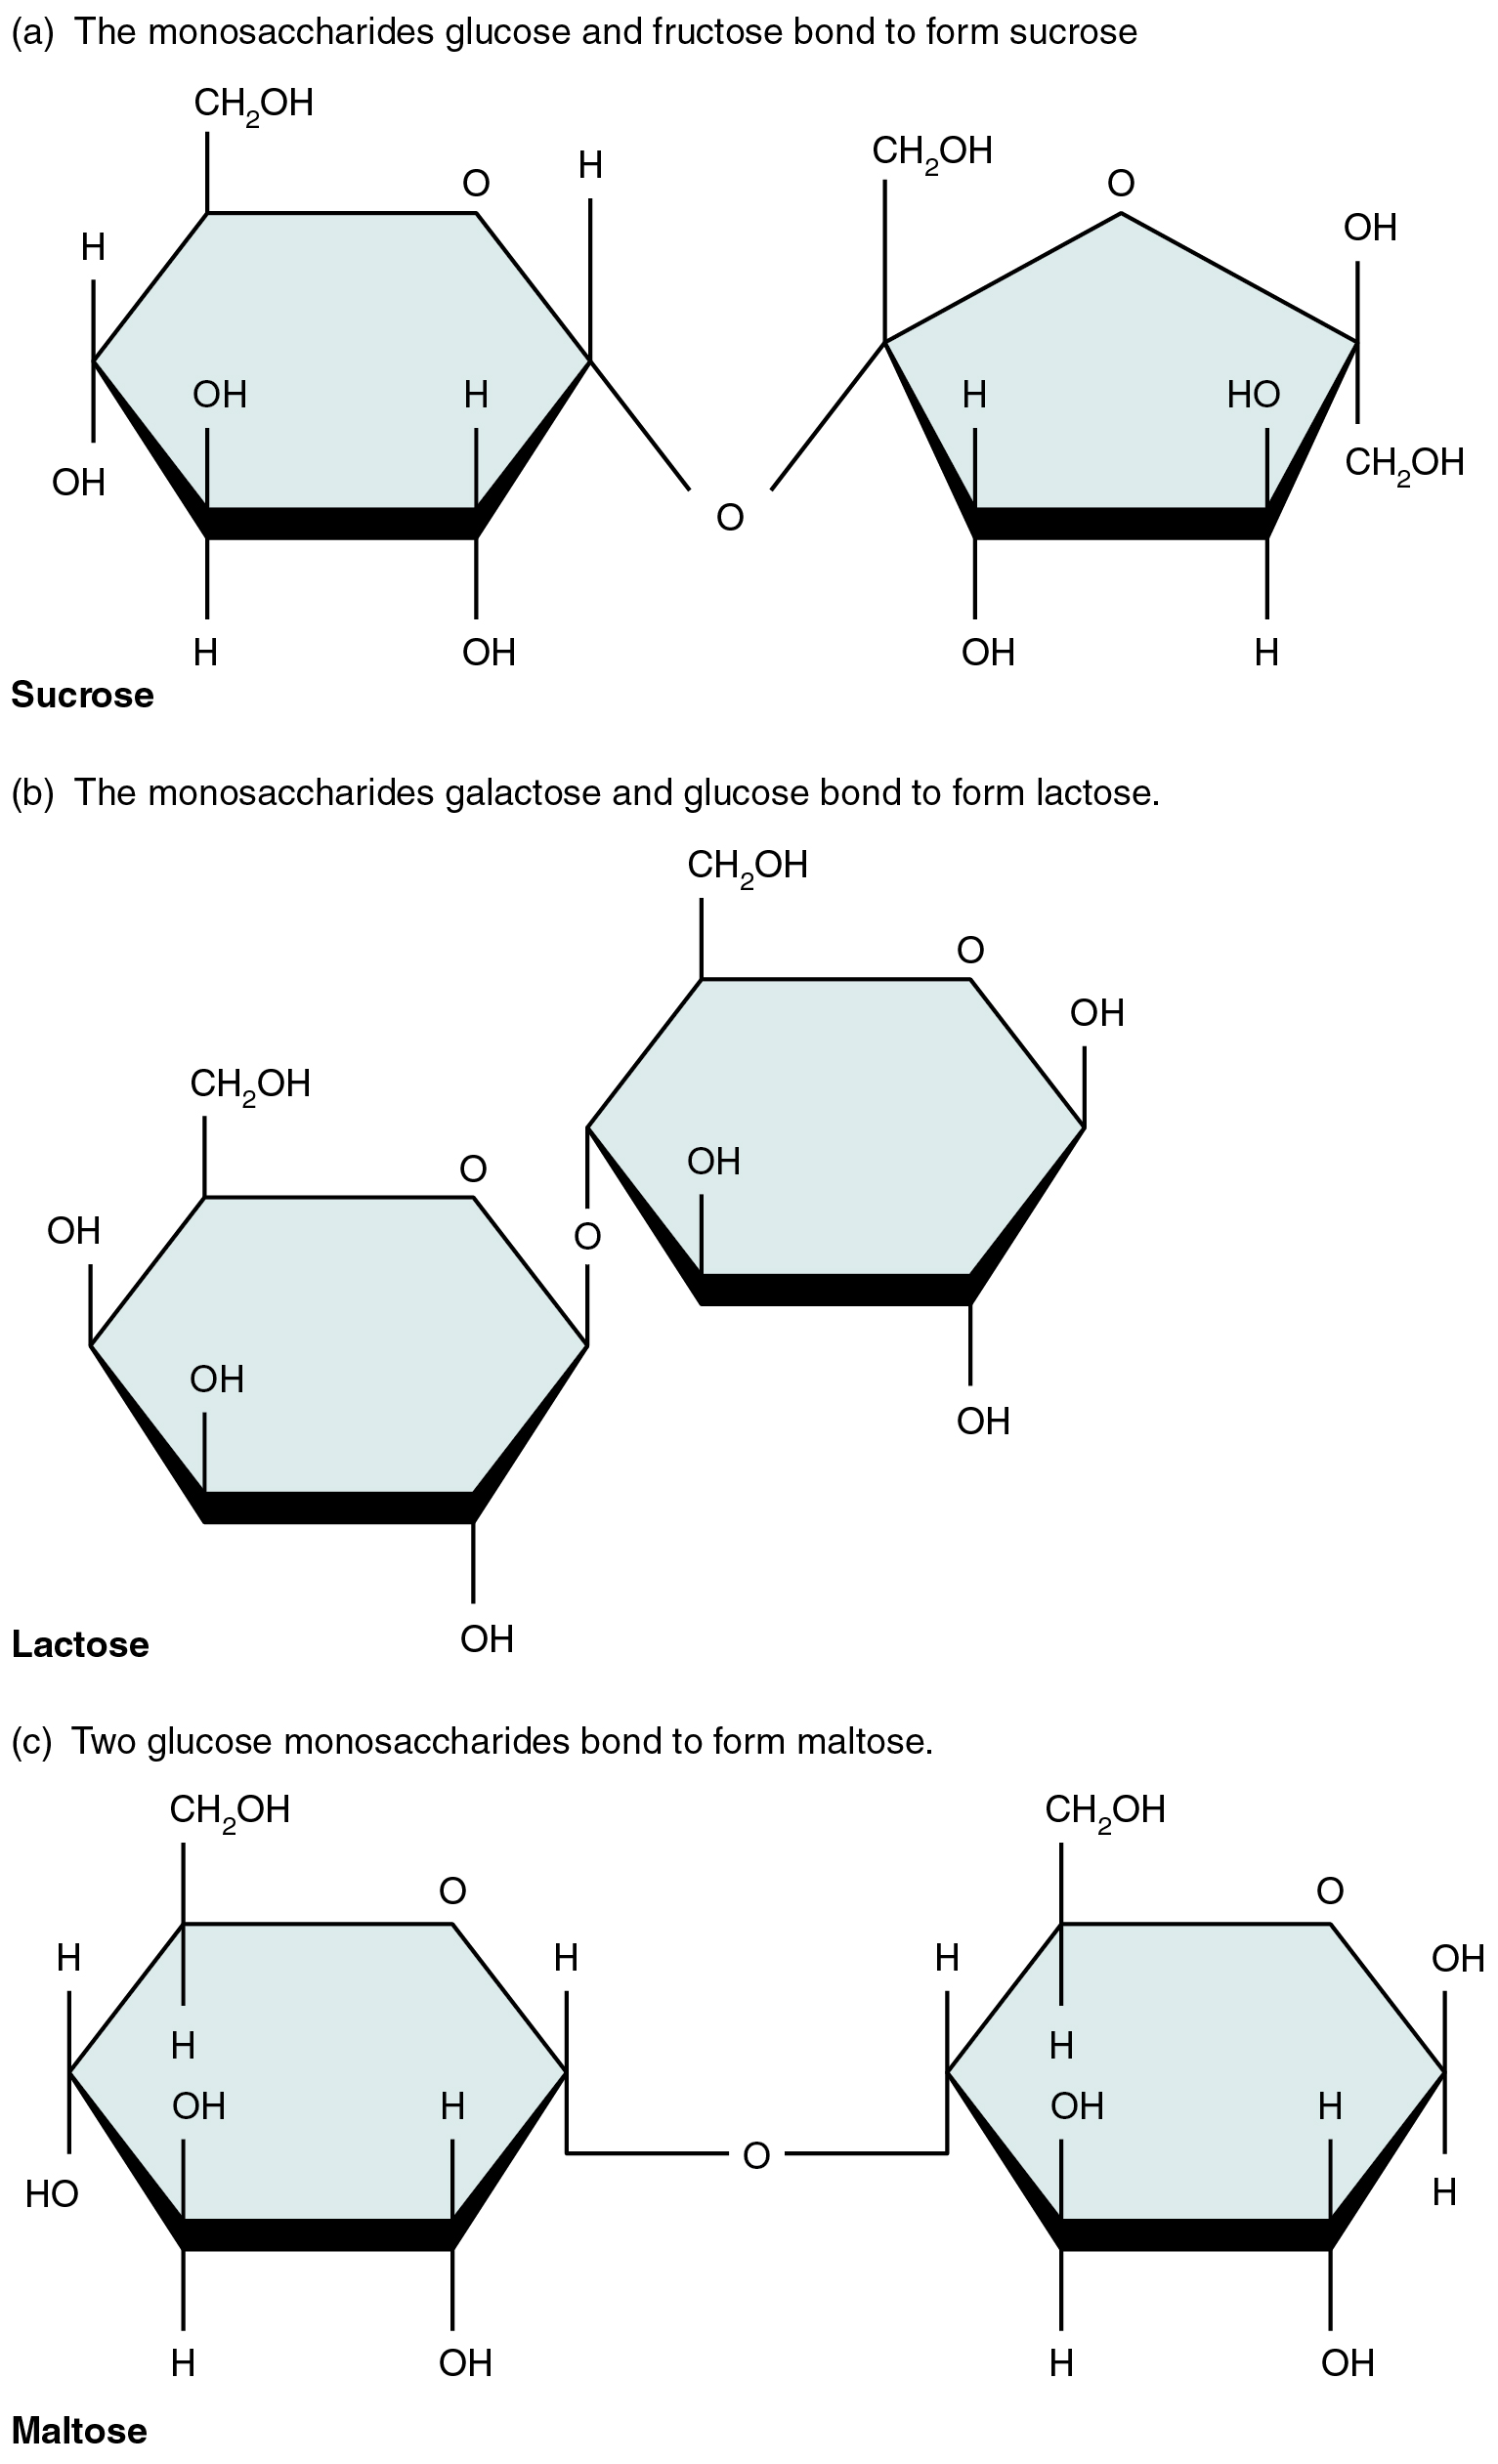 This figure shows the structure of sucrose, lactose, and maltose.